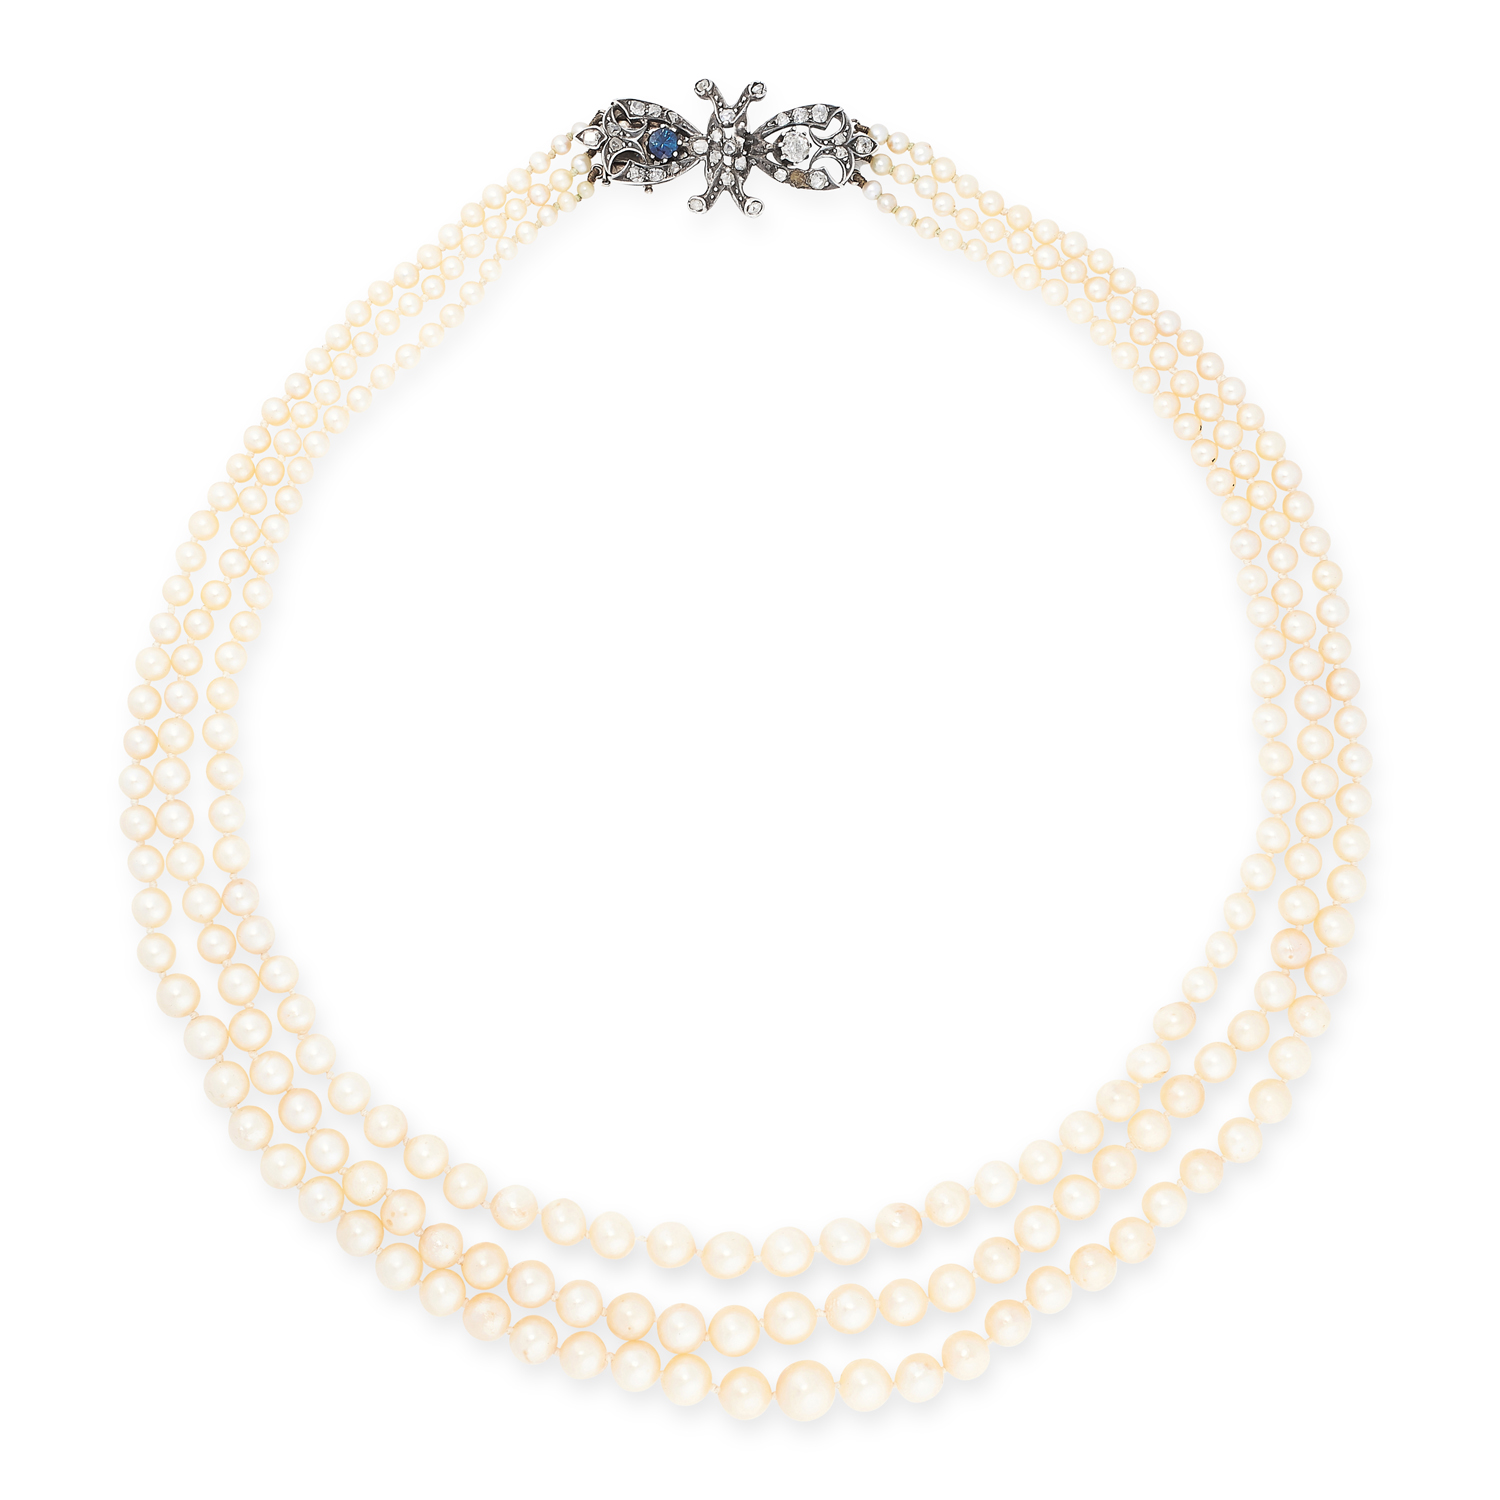 AN ANTIQUE PEARL, DIAMOND AND SAPPHIRE NECKLACE comprising of three rows of pearls ranging from 2.